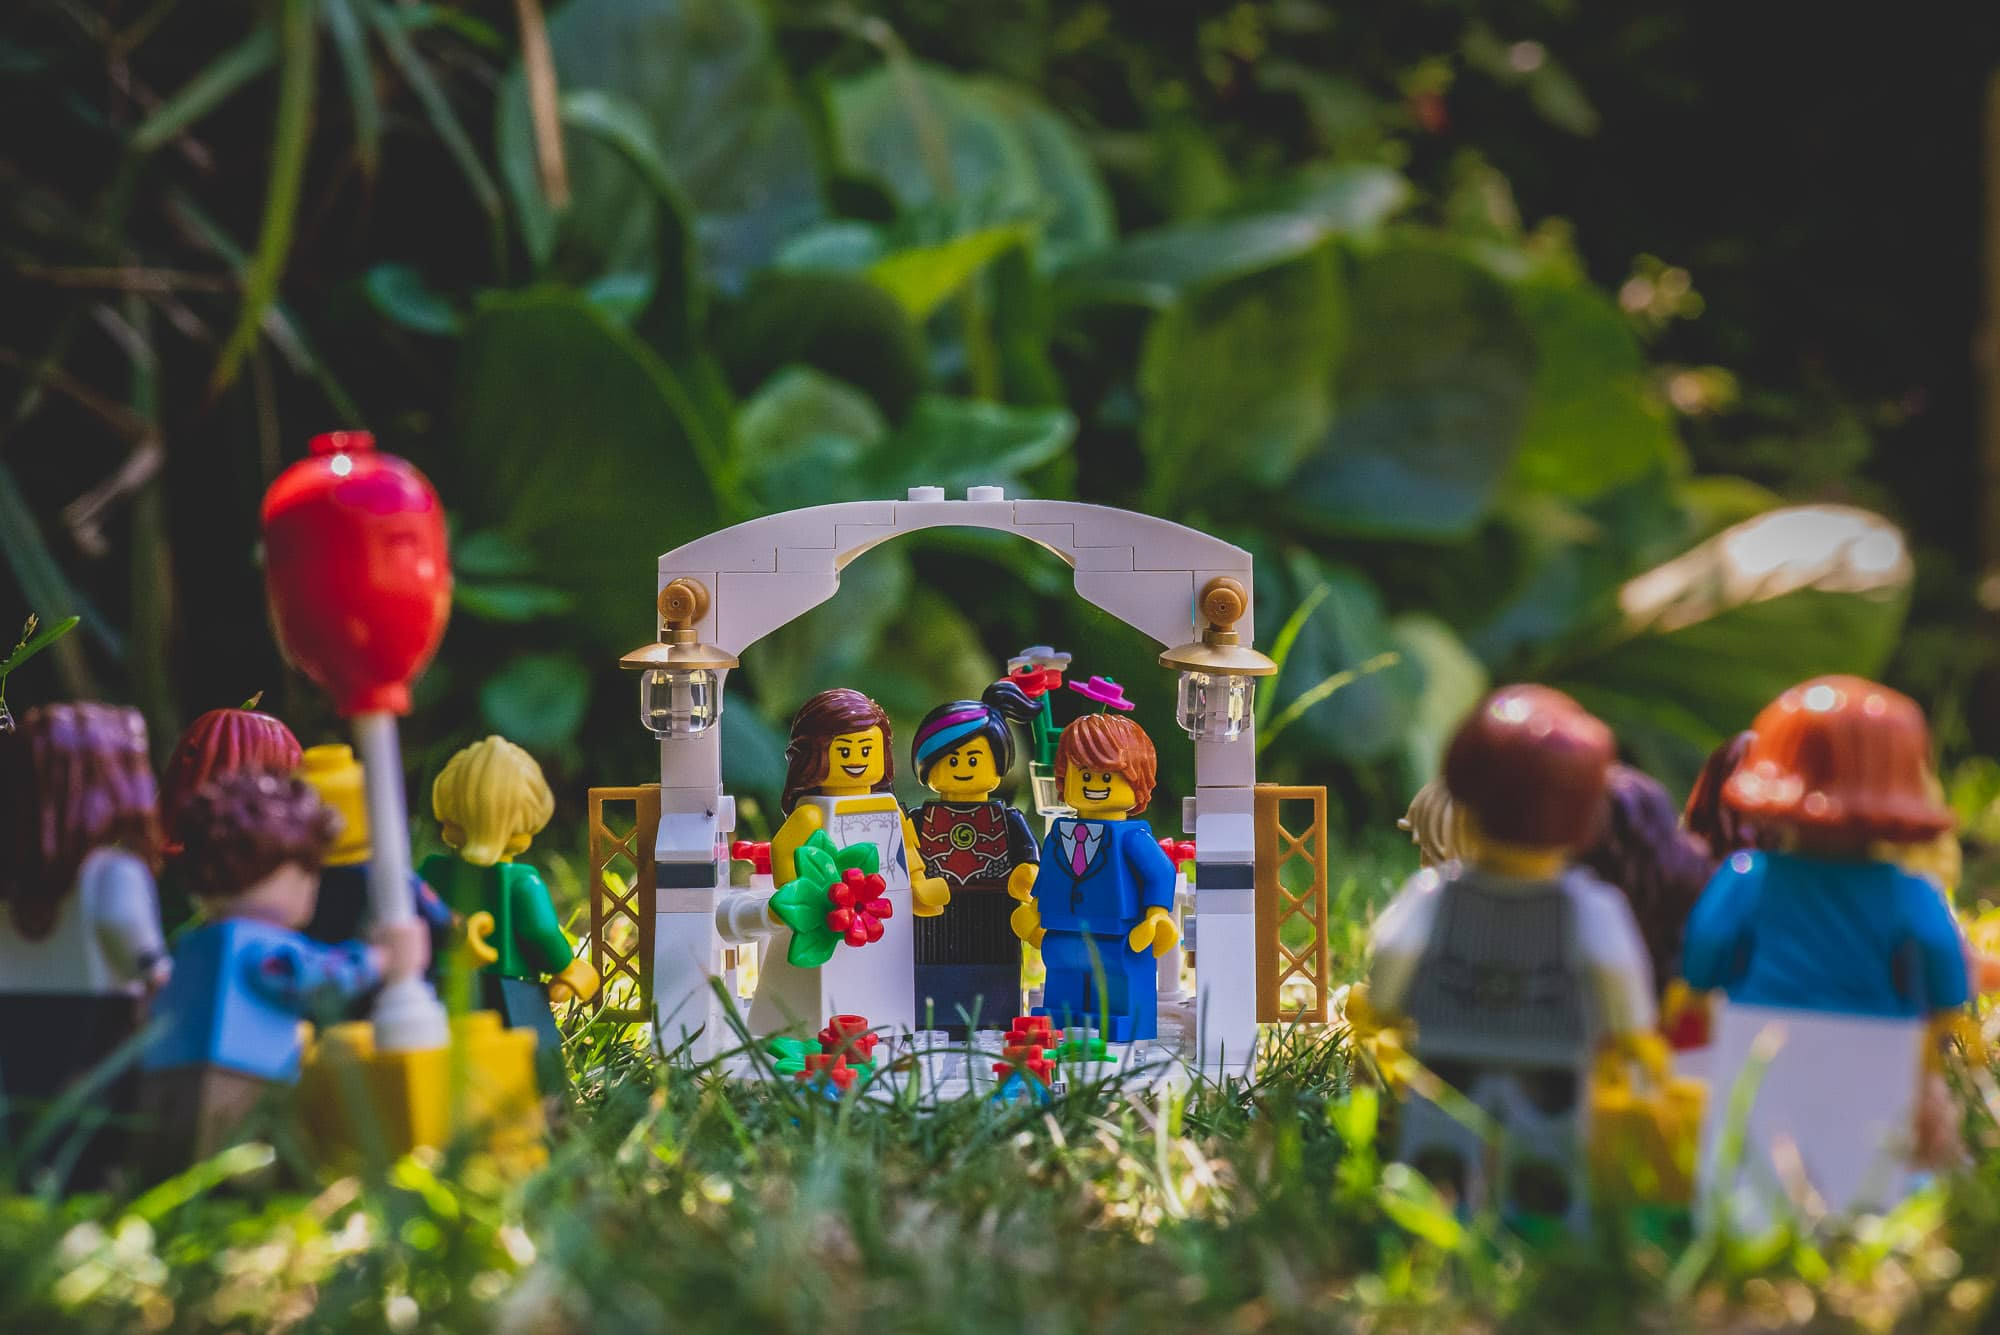 Lego Bride and Groom look back and smile at their wedding guests